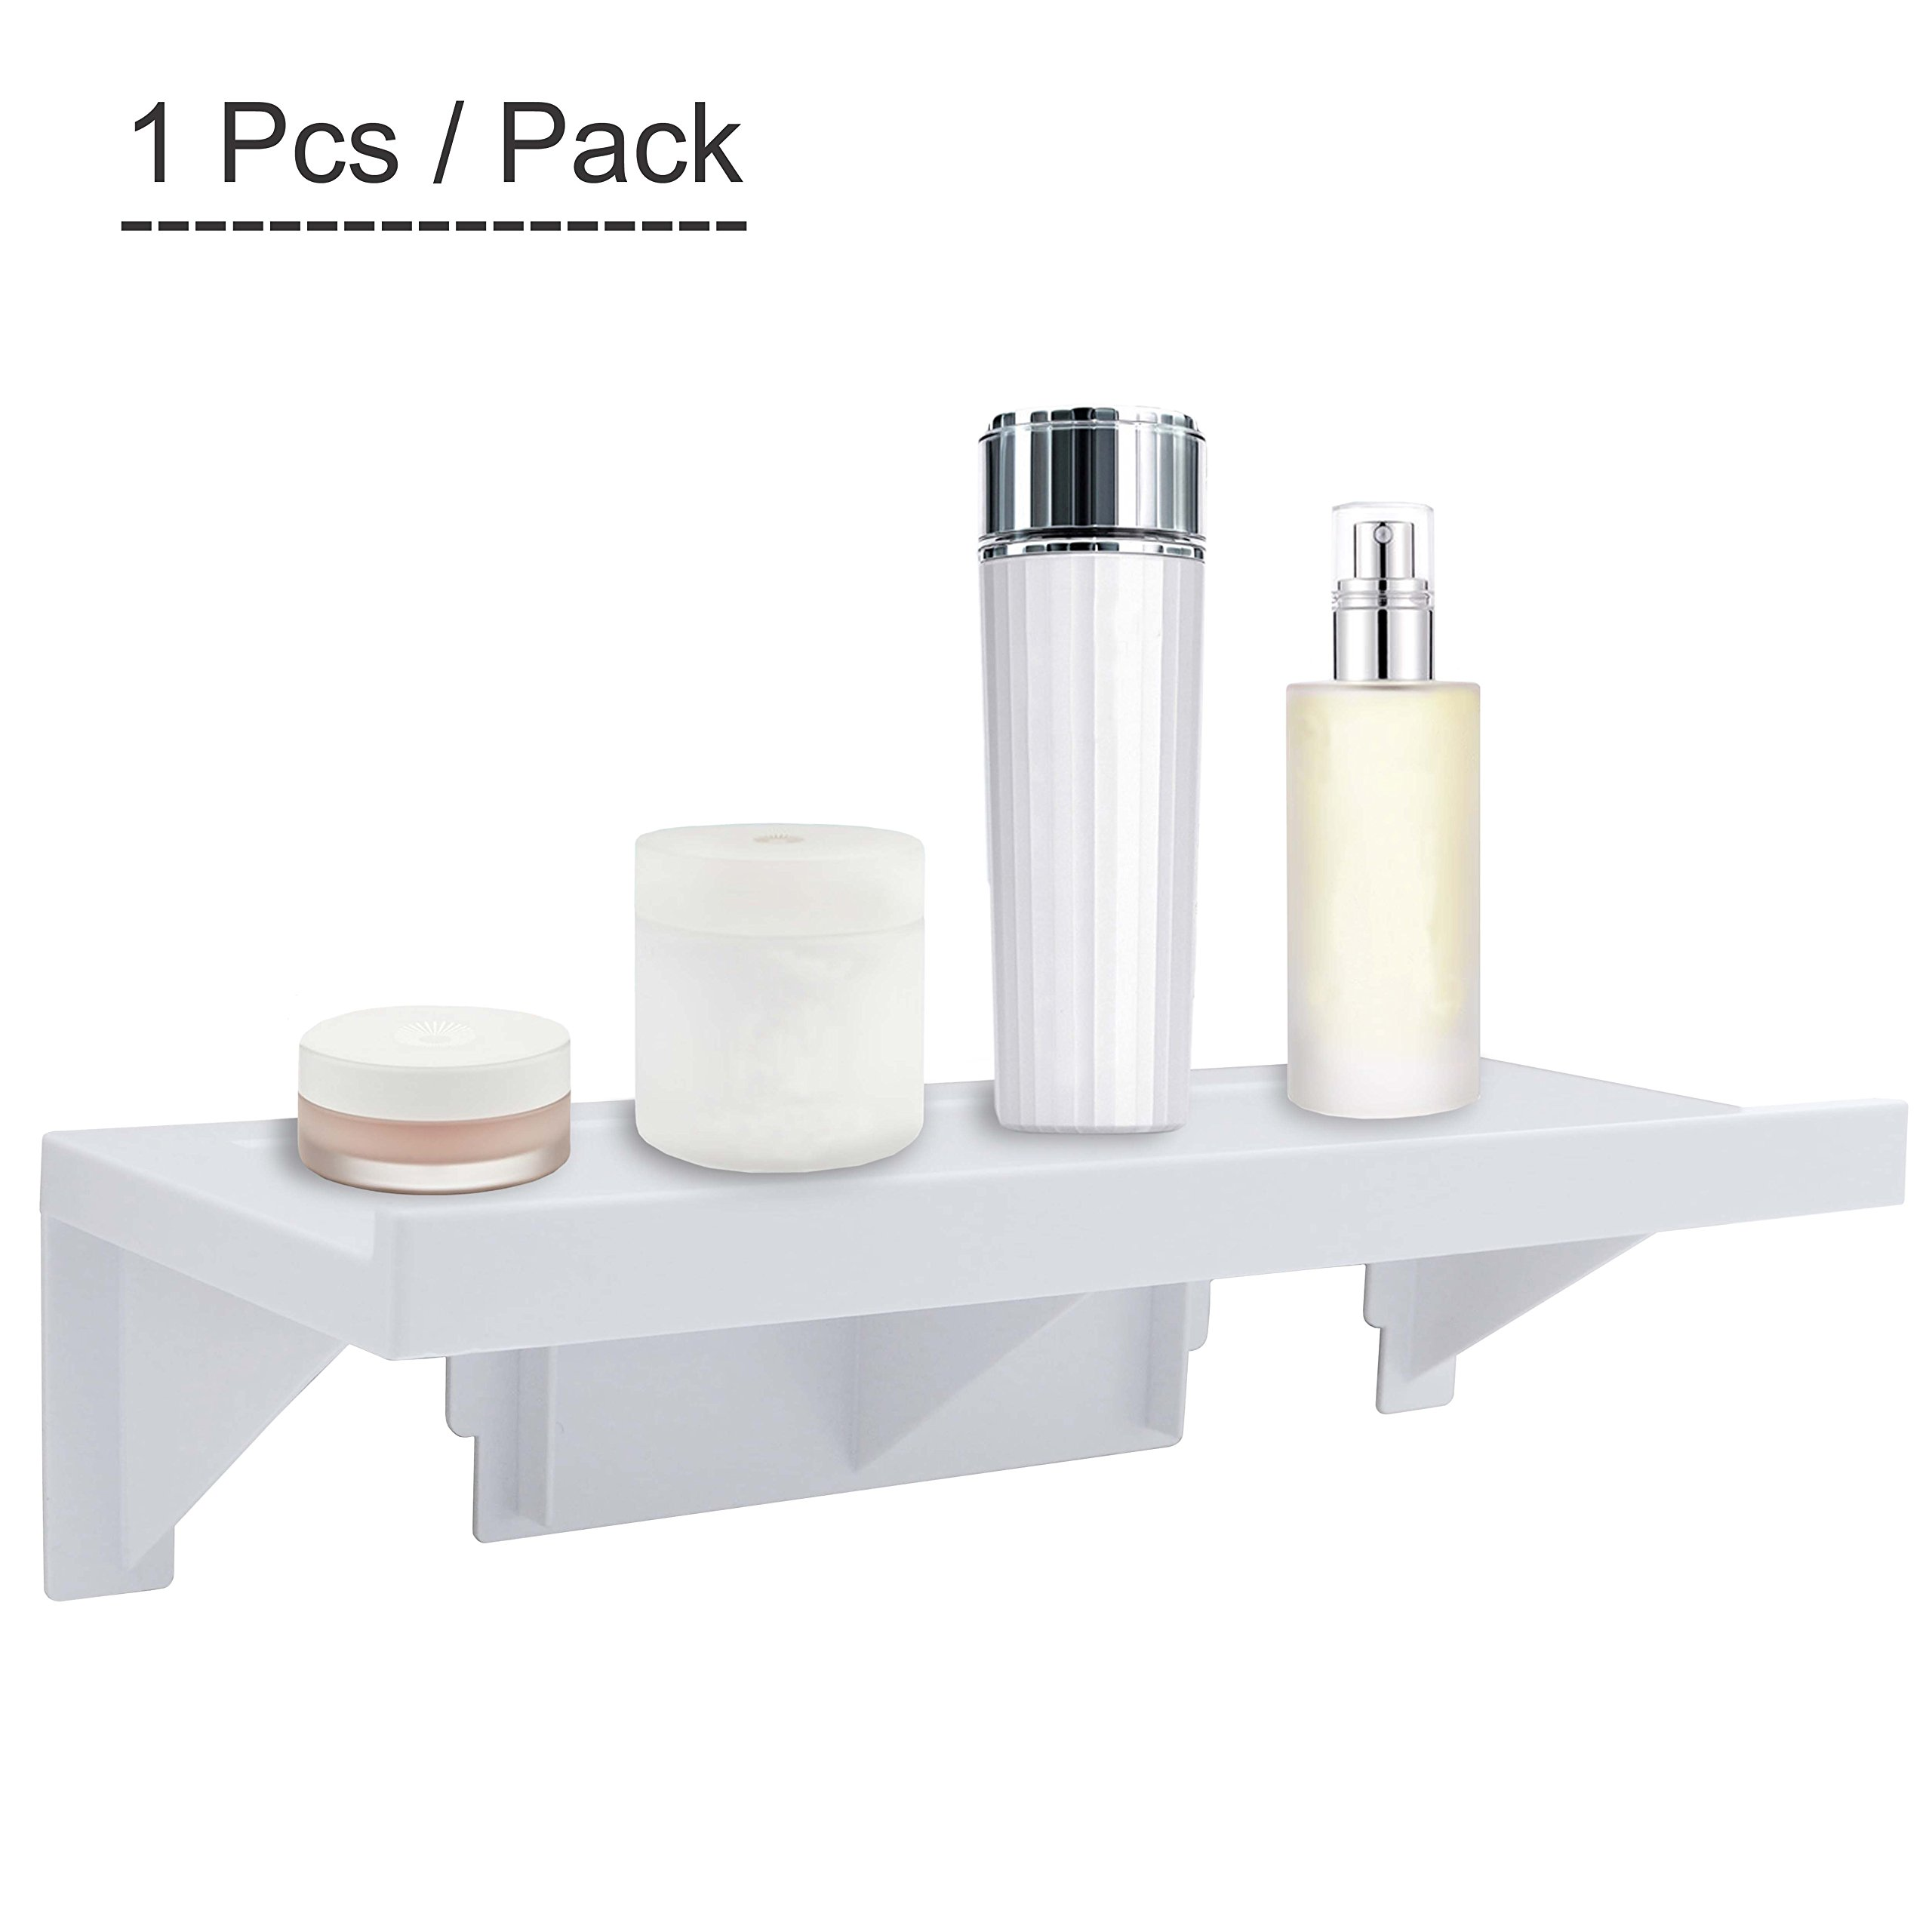 Upgraded Wall Mount Shelf,OKOMATCH No-Trace Stick Plastic Storage Rack For Kitchen/Bathroom,Decor Organizer In Living Room - No Drill & Nail Installation - Reusable(1pcs/Pack)